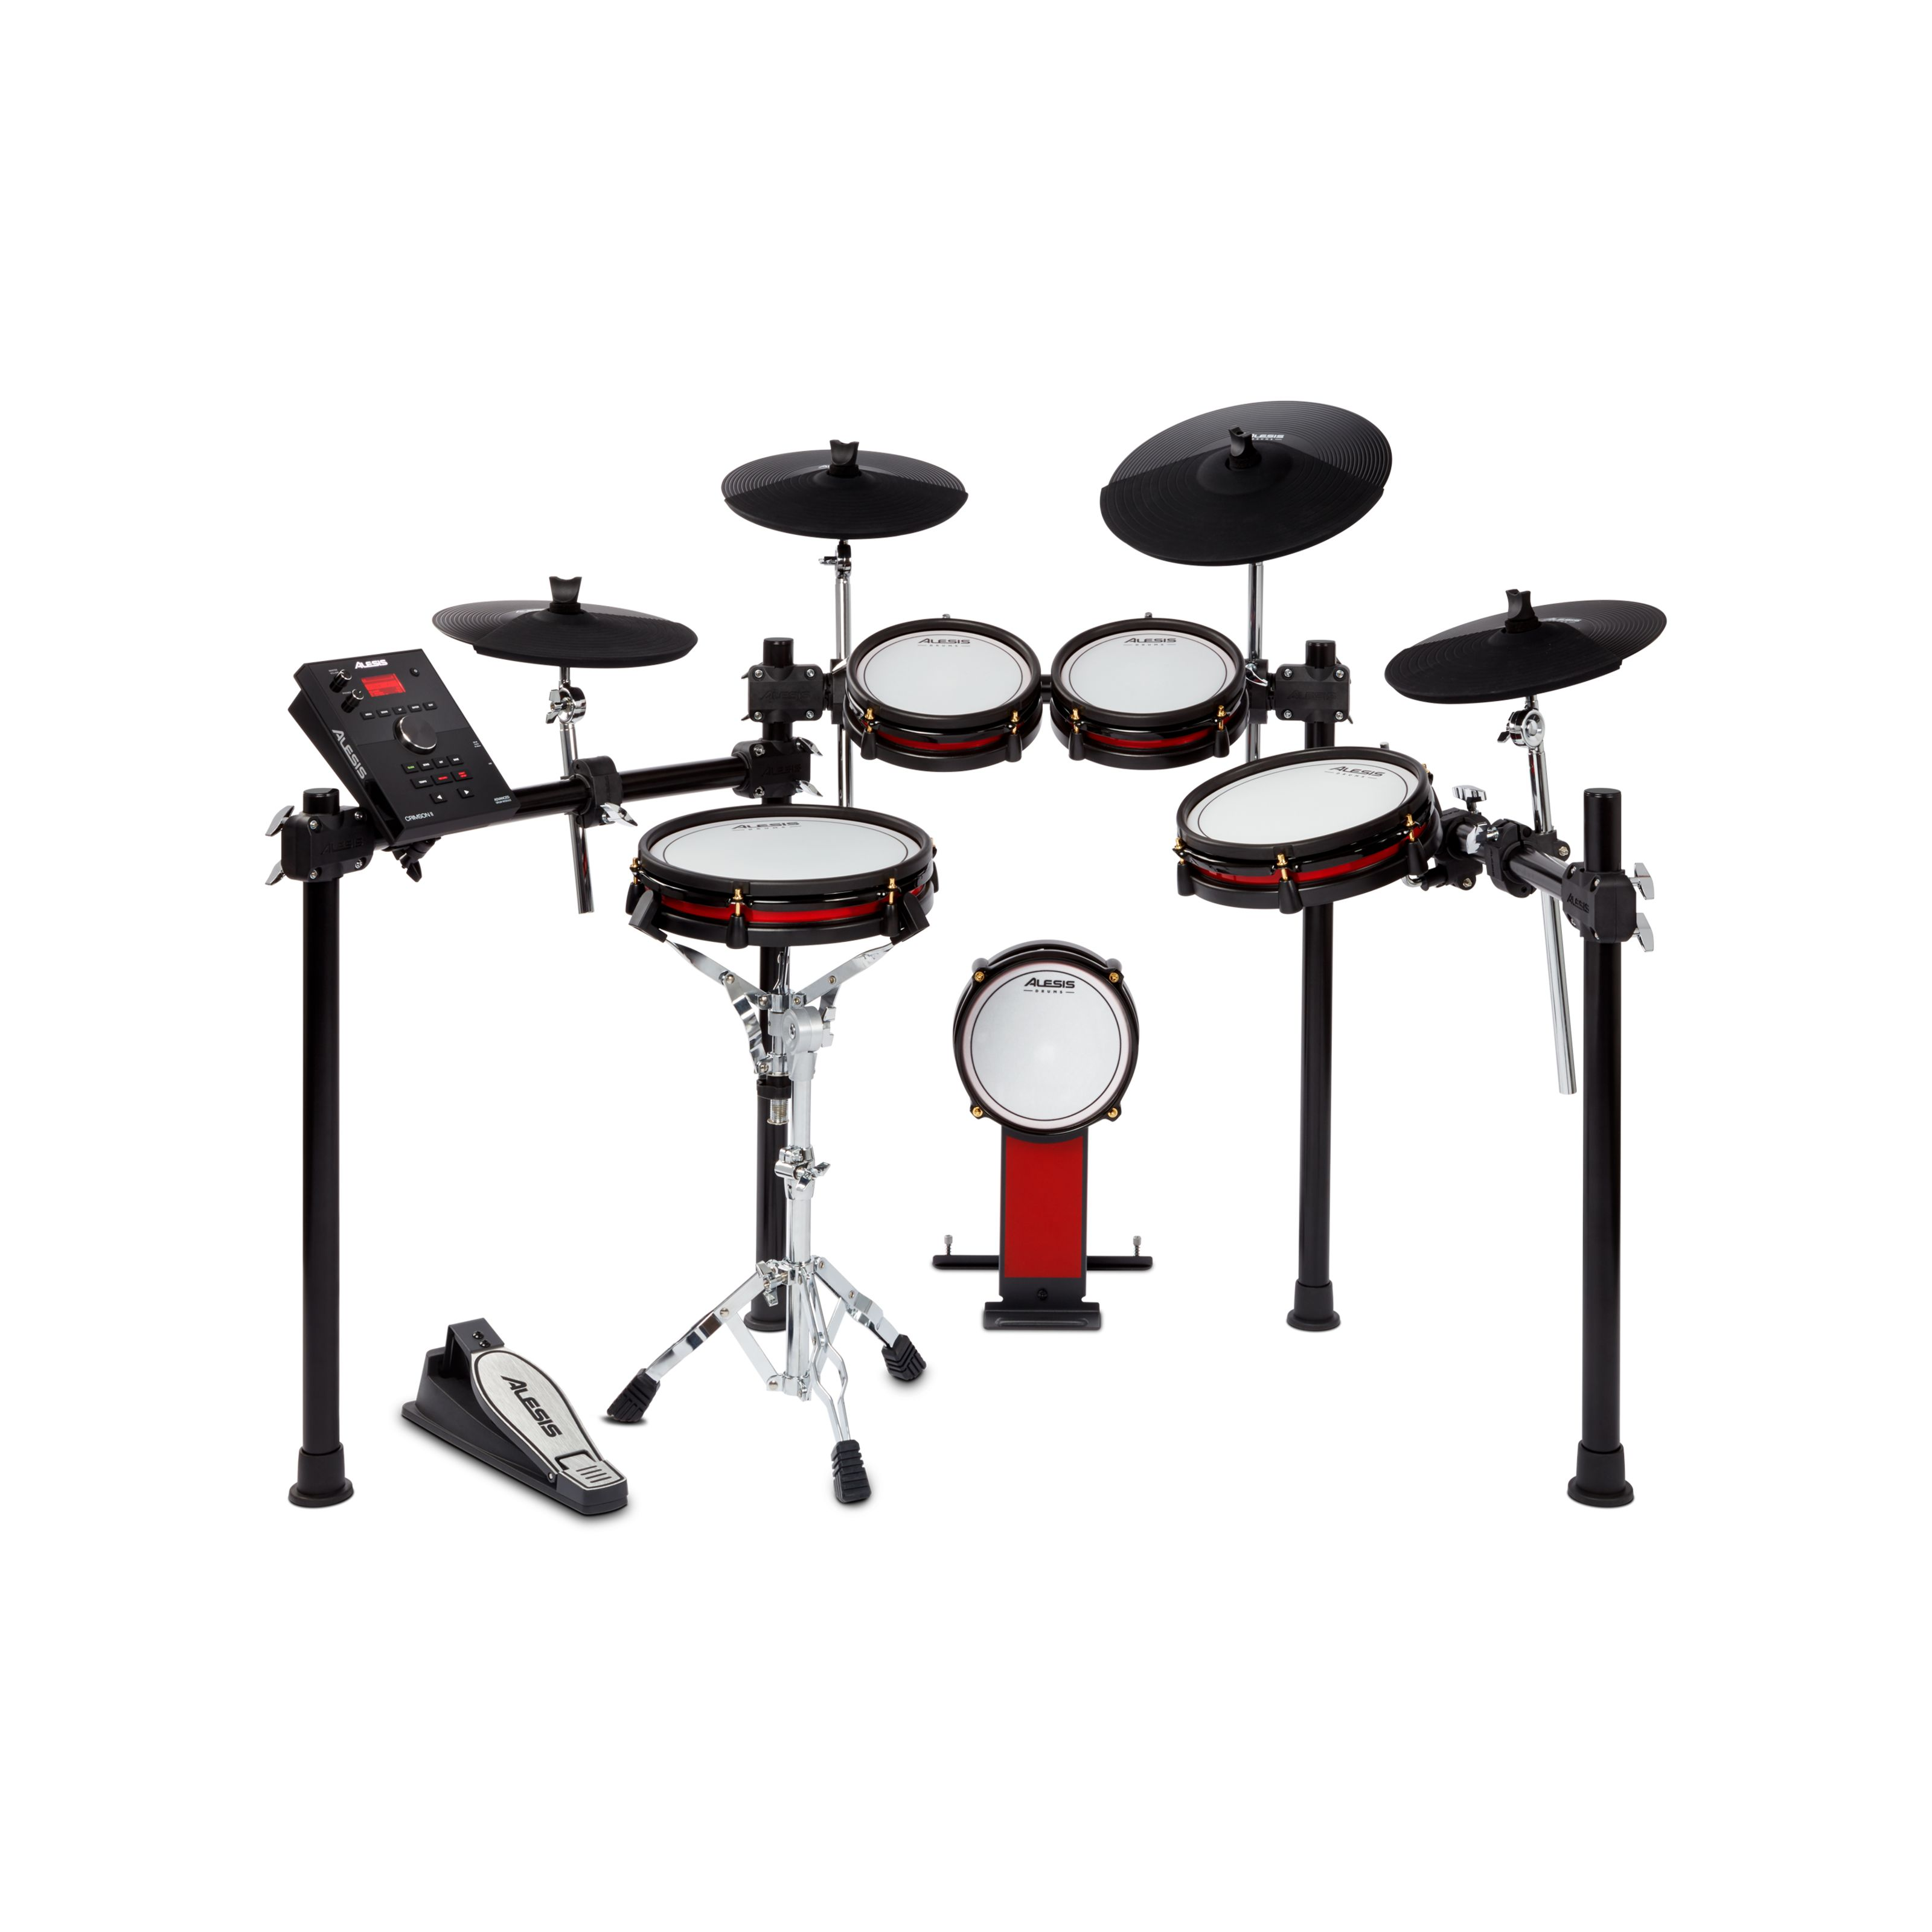 Alesis - Crimson II SE Mesh Kit E-Drum Set CRIMSONIISEXEU